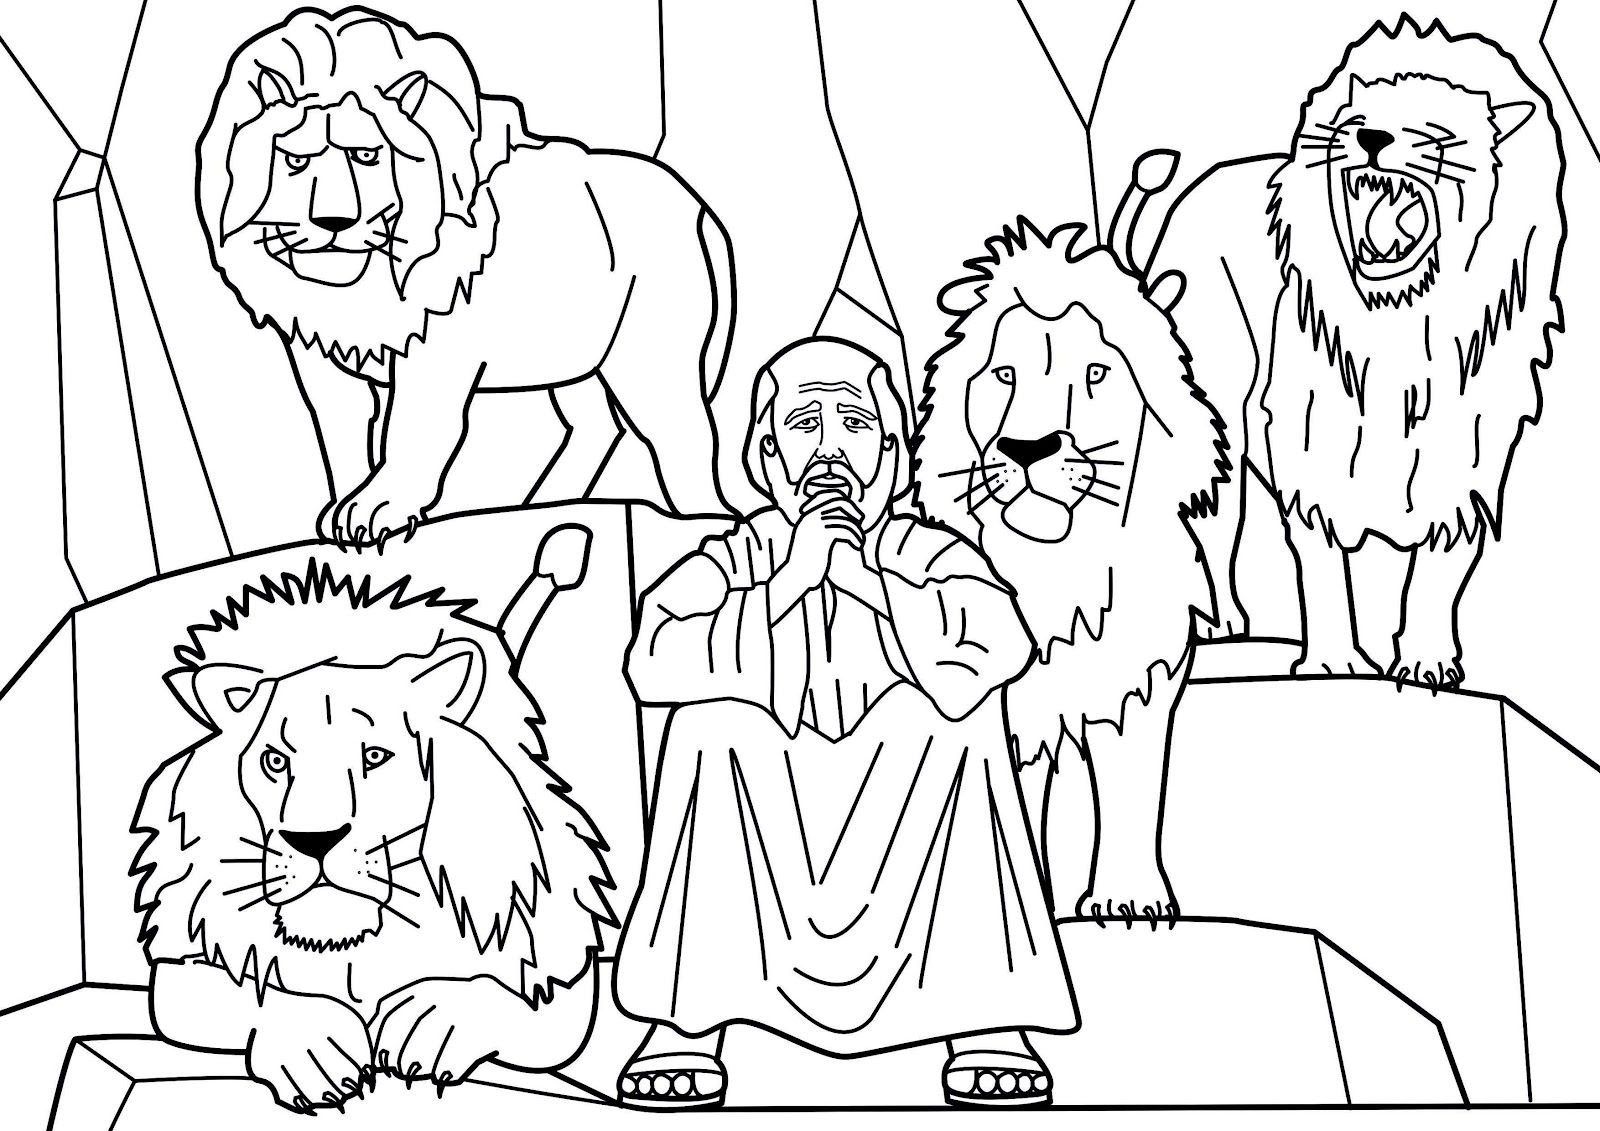 Coloring Pages Coloring Pages Bible Stories 1000 images about coloring pages bible on pinterest good samaritan books and coloring